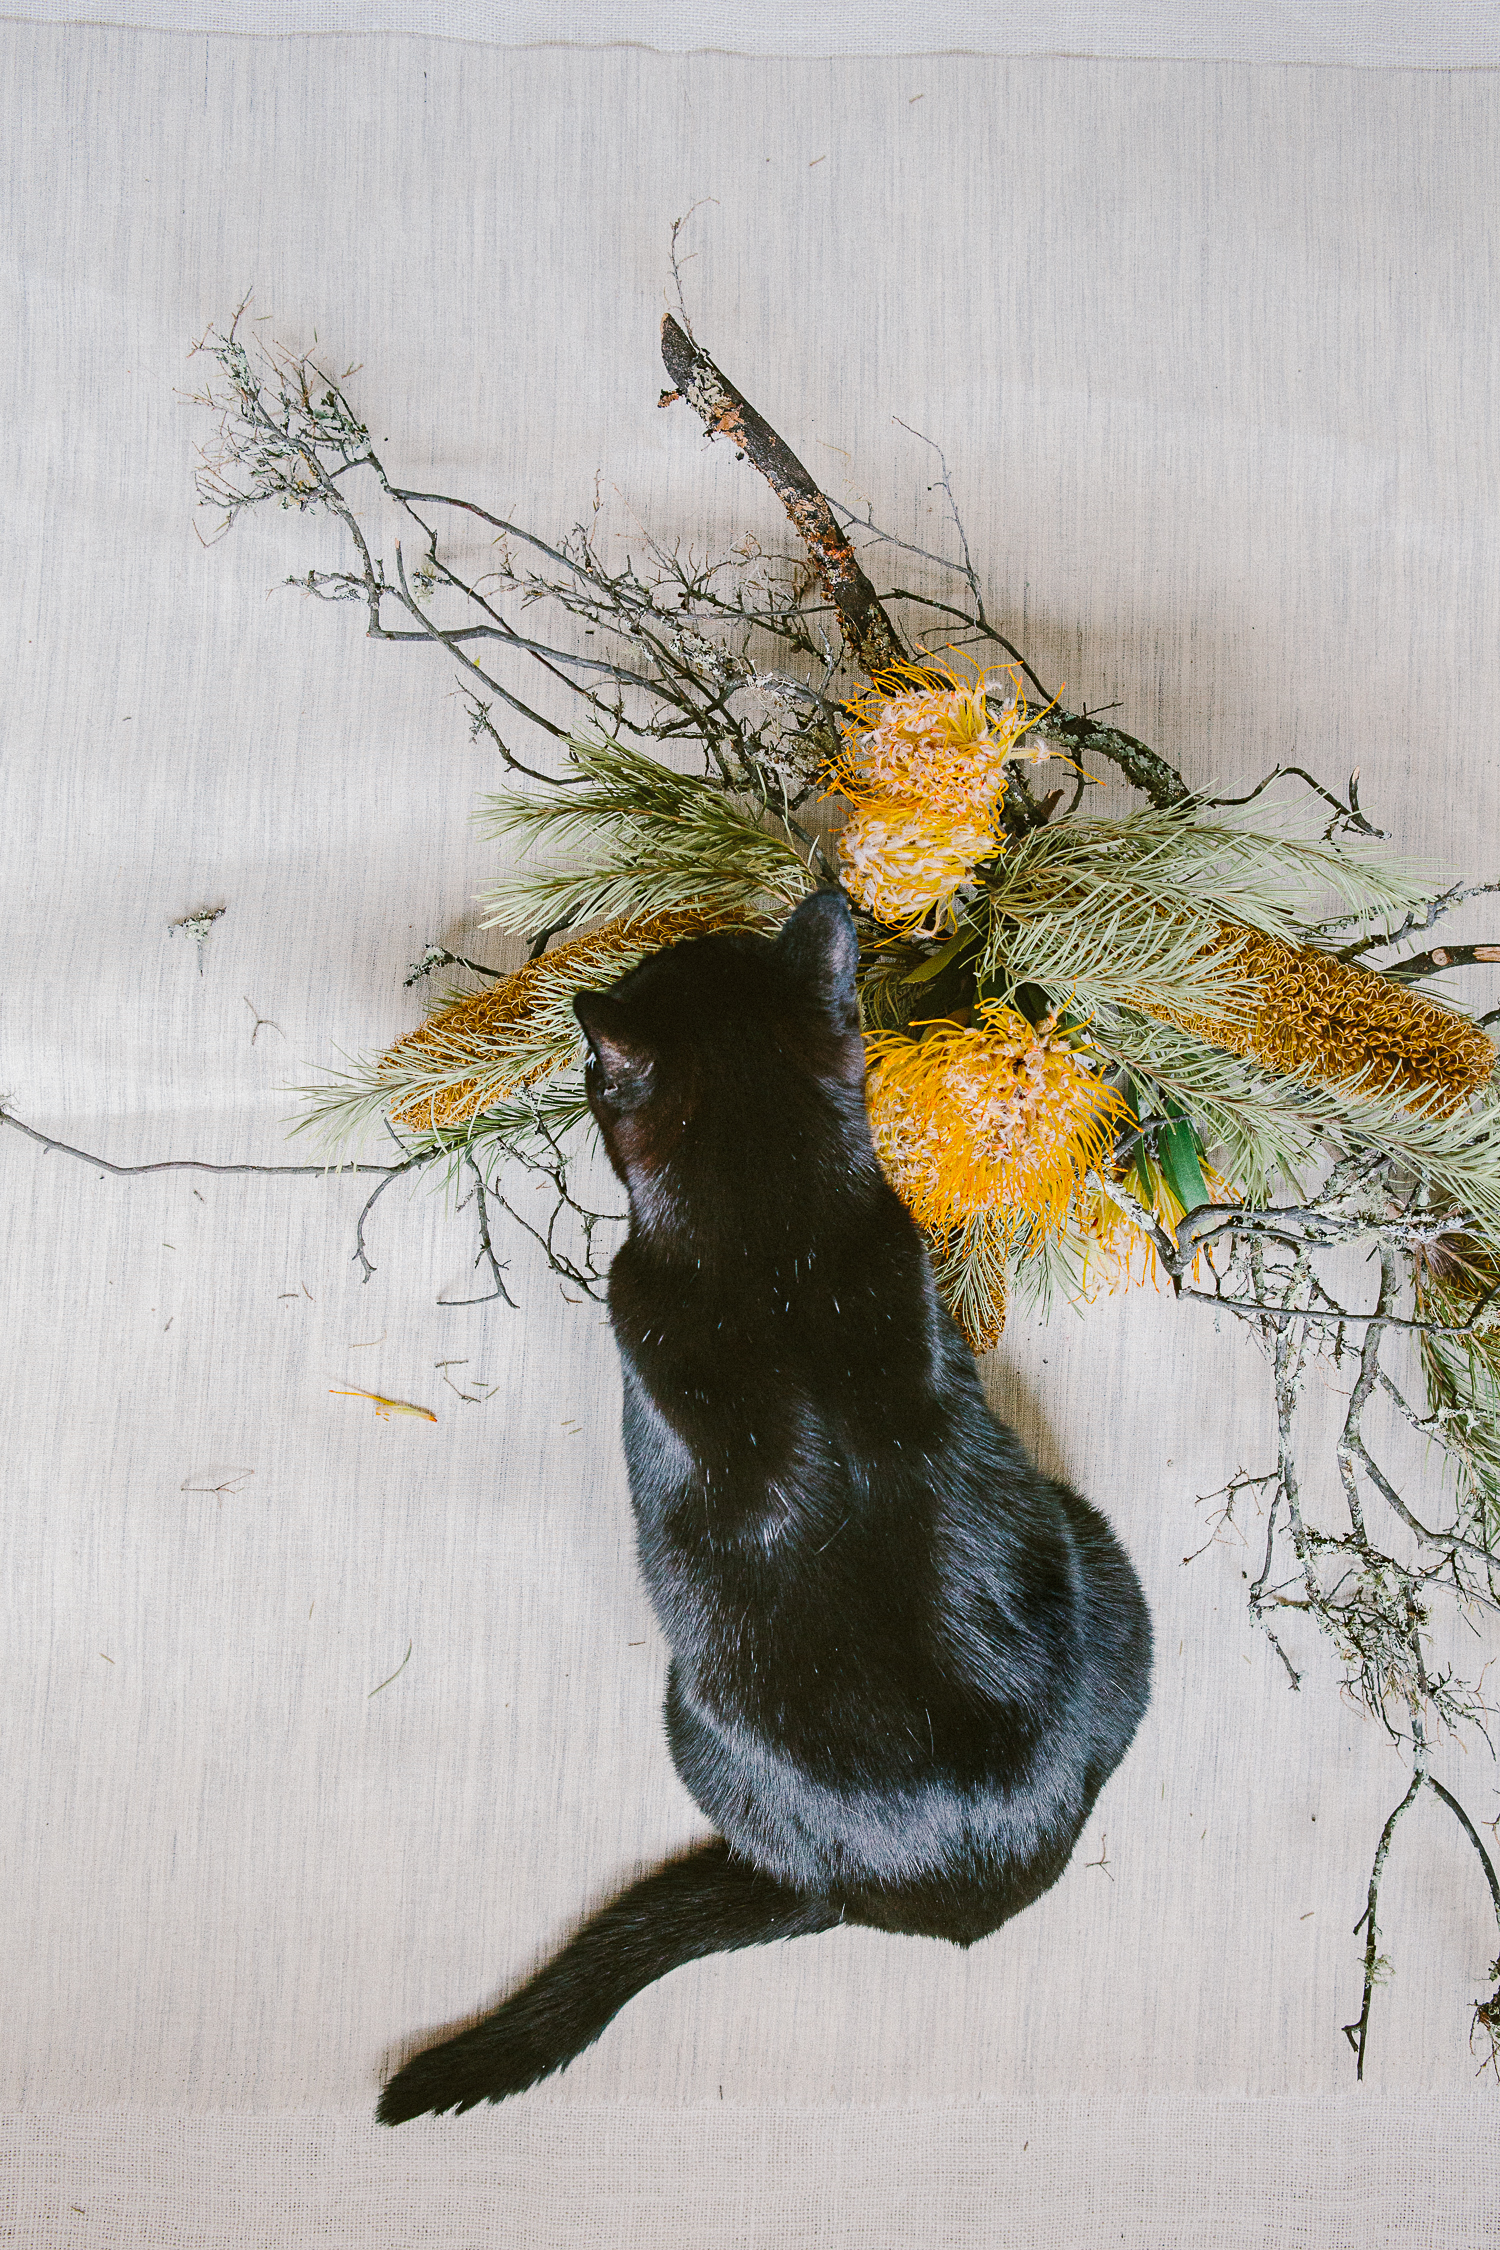 twoguineapigs_photography_ruby_slippers_cat_and_floral_series_1500-4.jpg